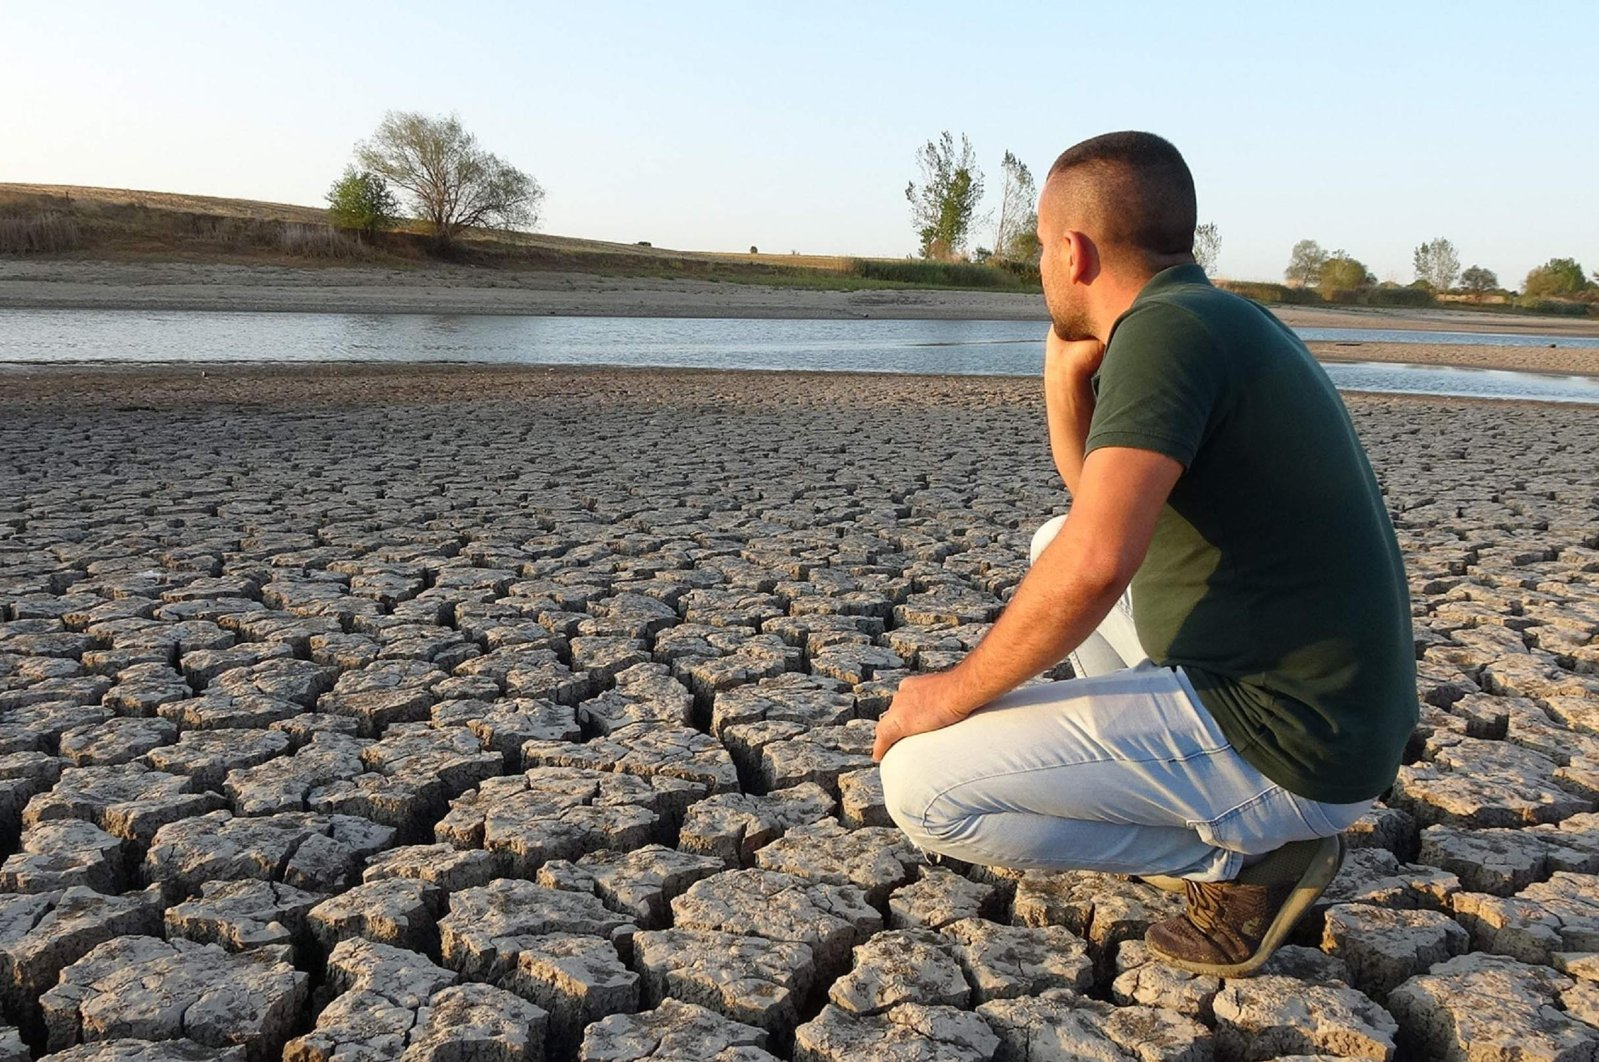 A man looks at the dry land next to a depleted pond, in Edirne, Turkey, Sept. 25, 2020. (DHA Photo)